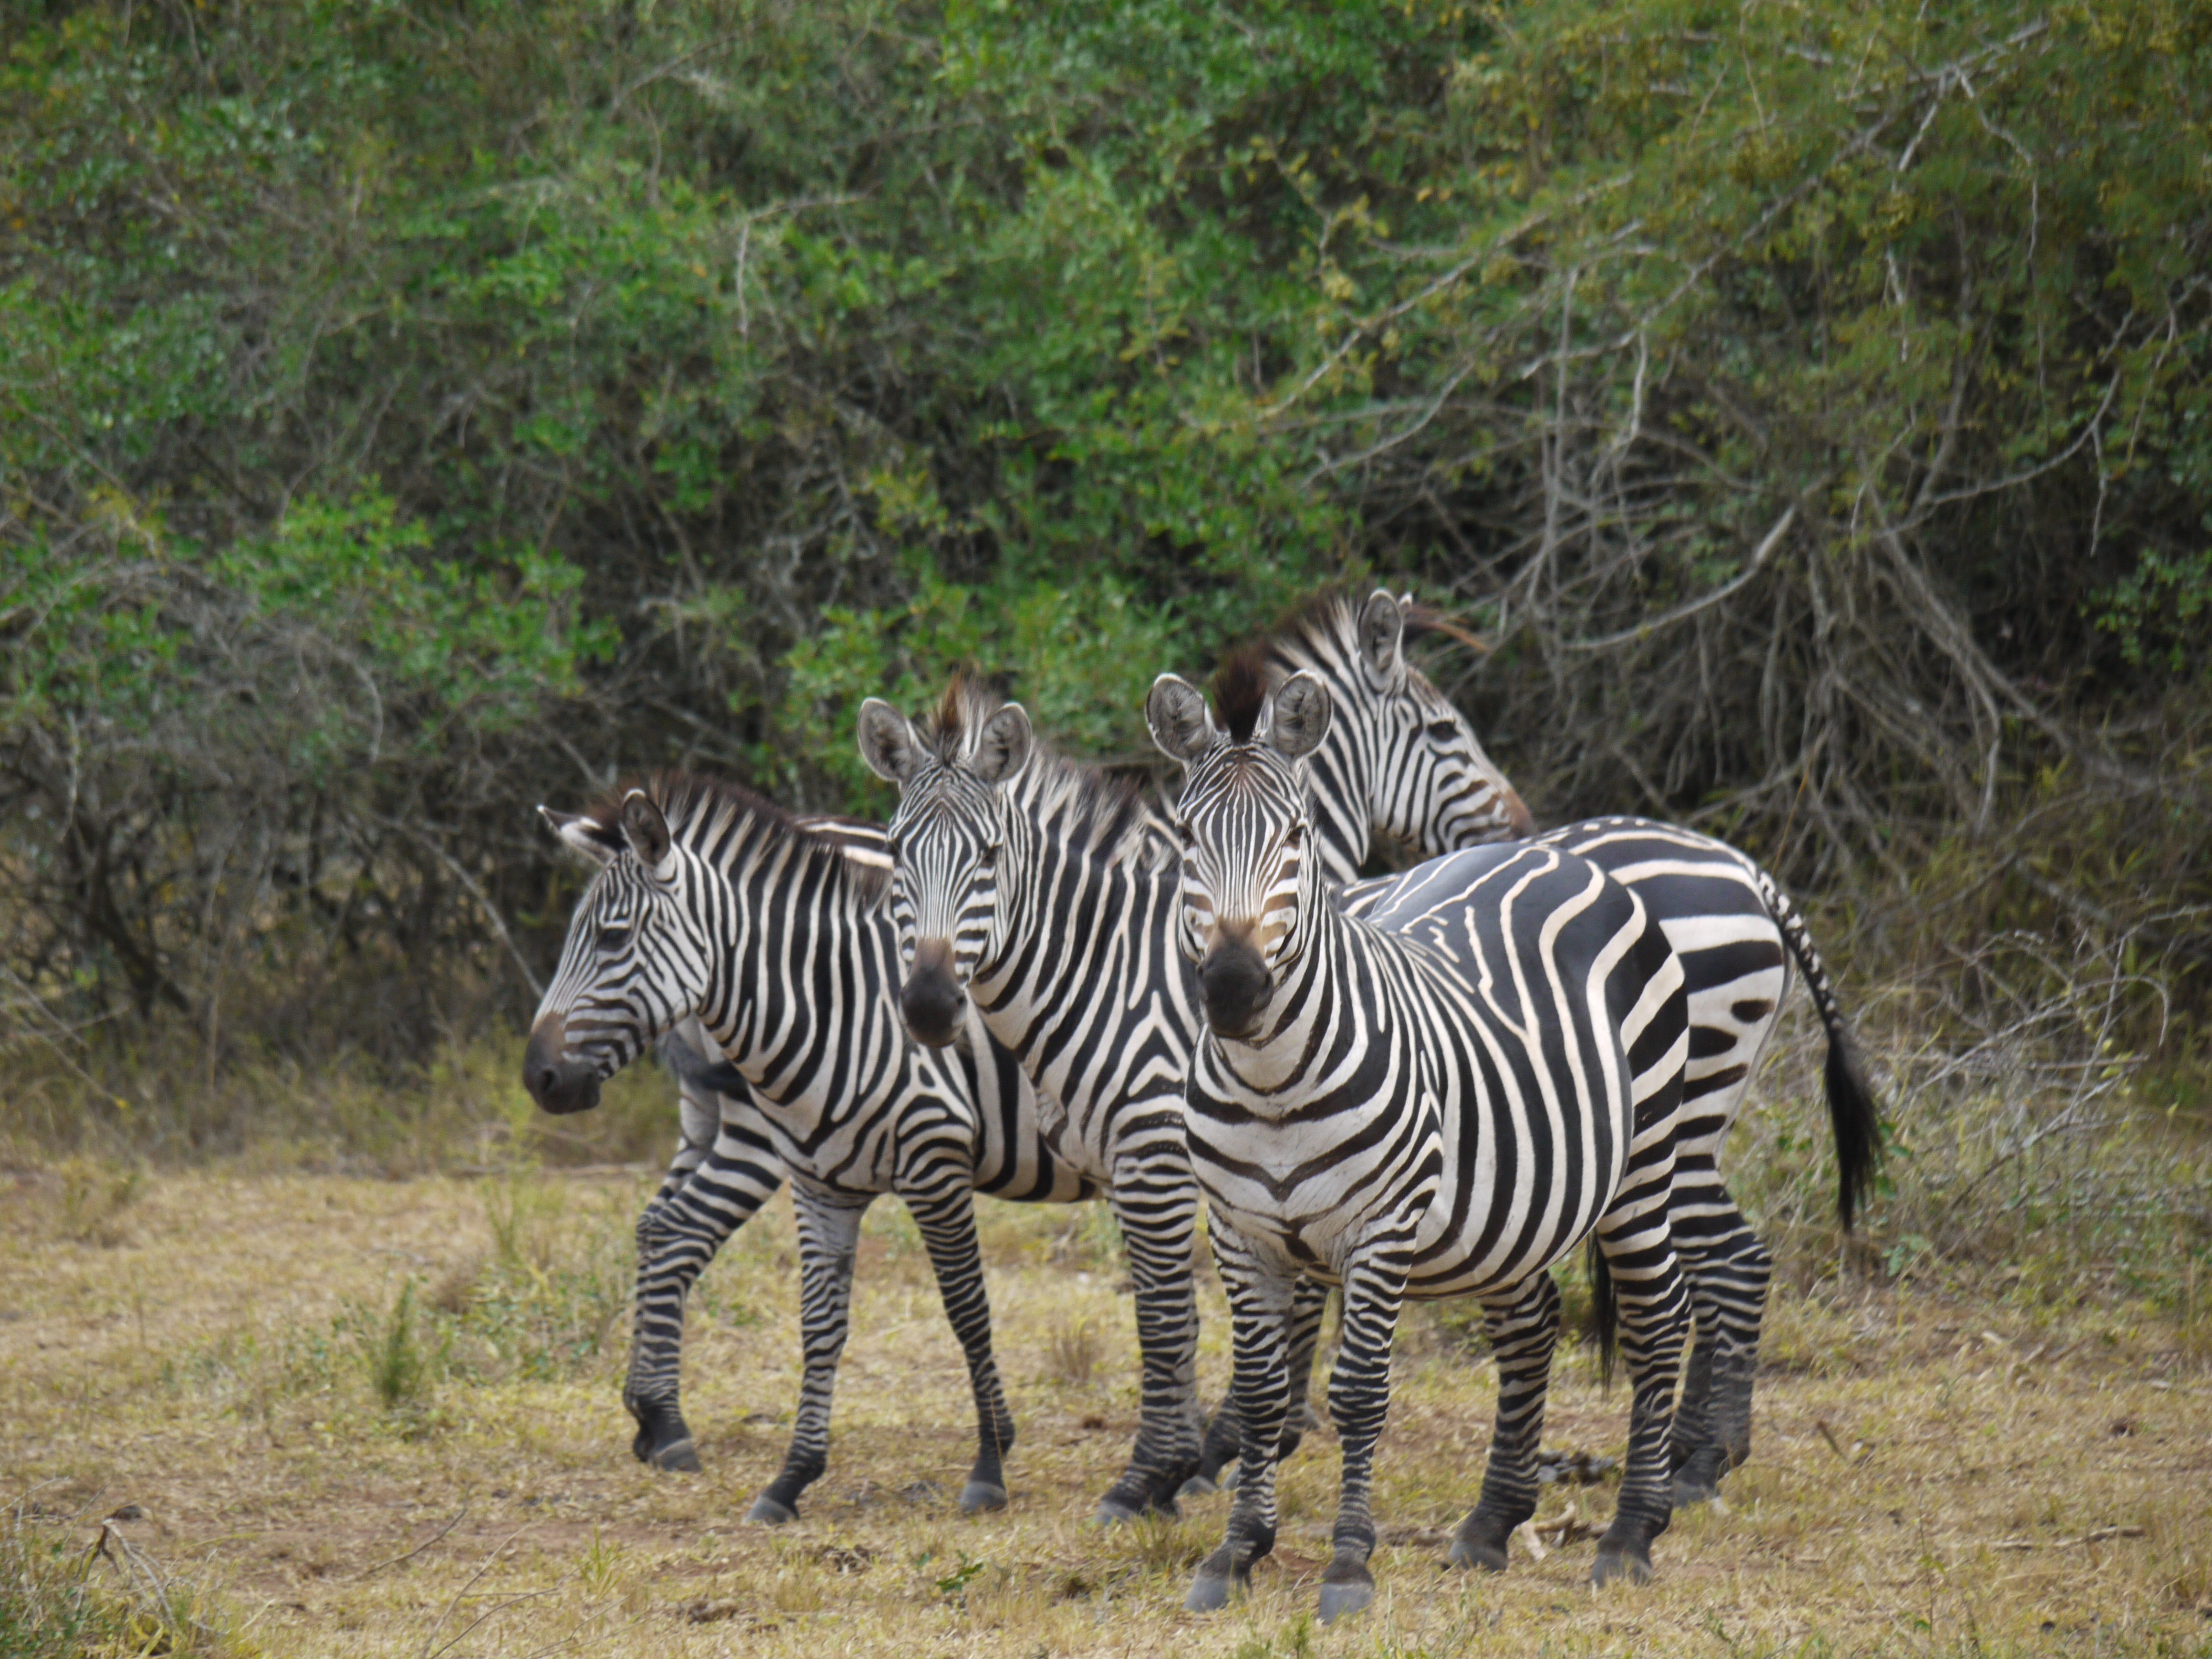 52444 download wallpaper Animals, Africa, Stroll, Zebra screensavers and pictures for free